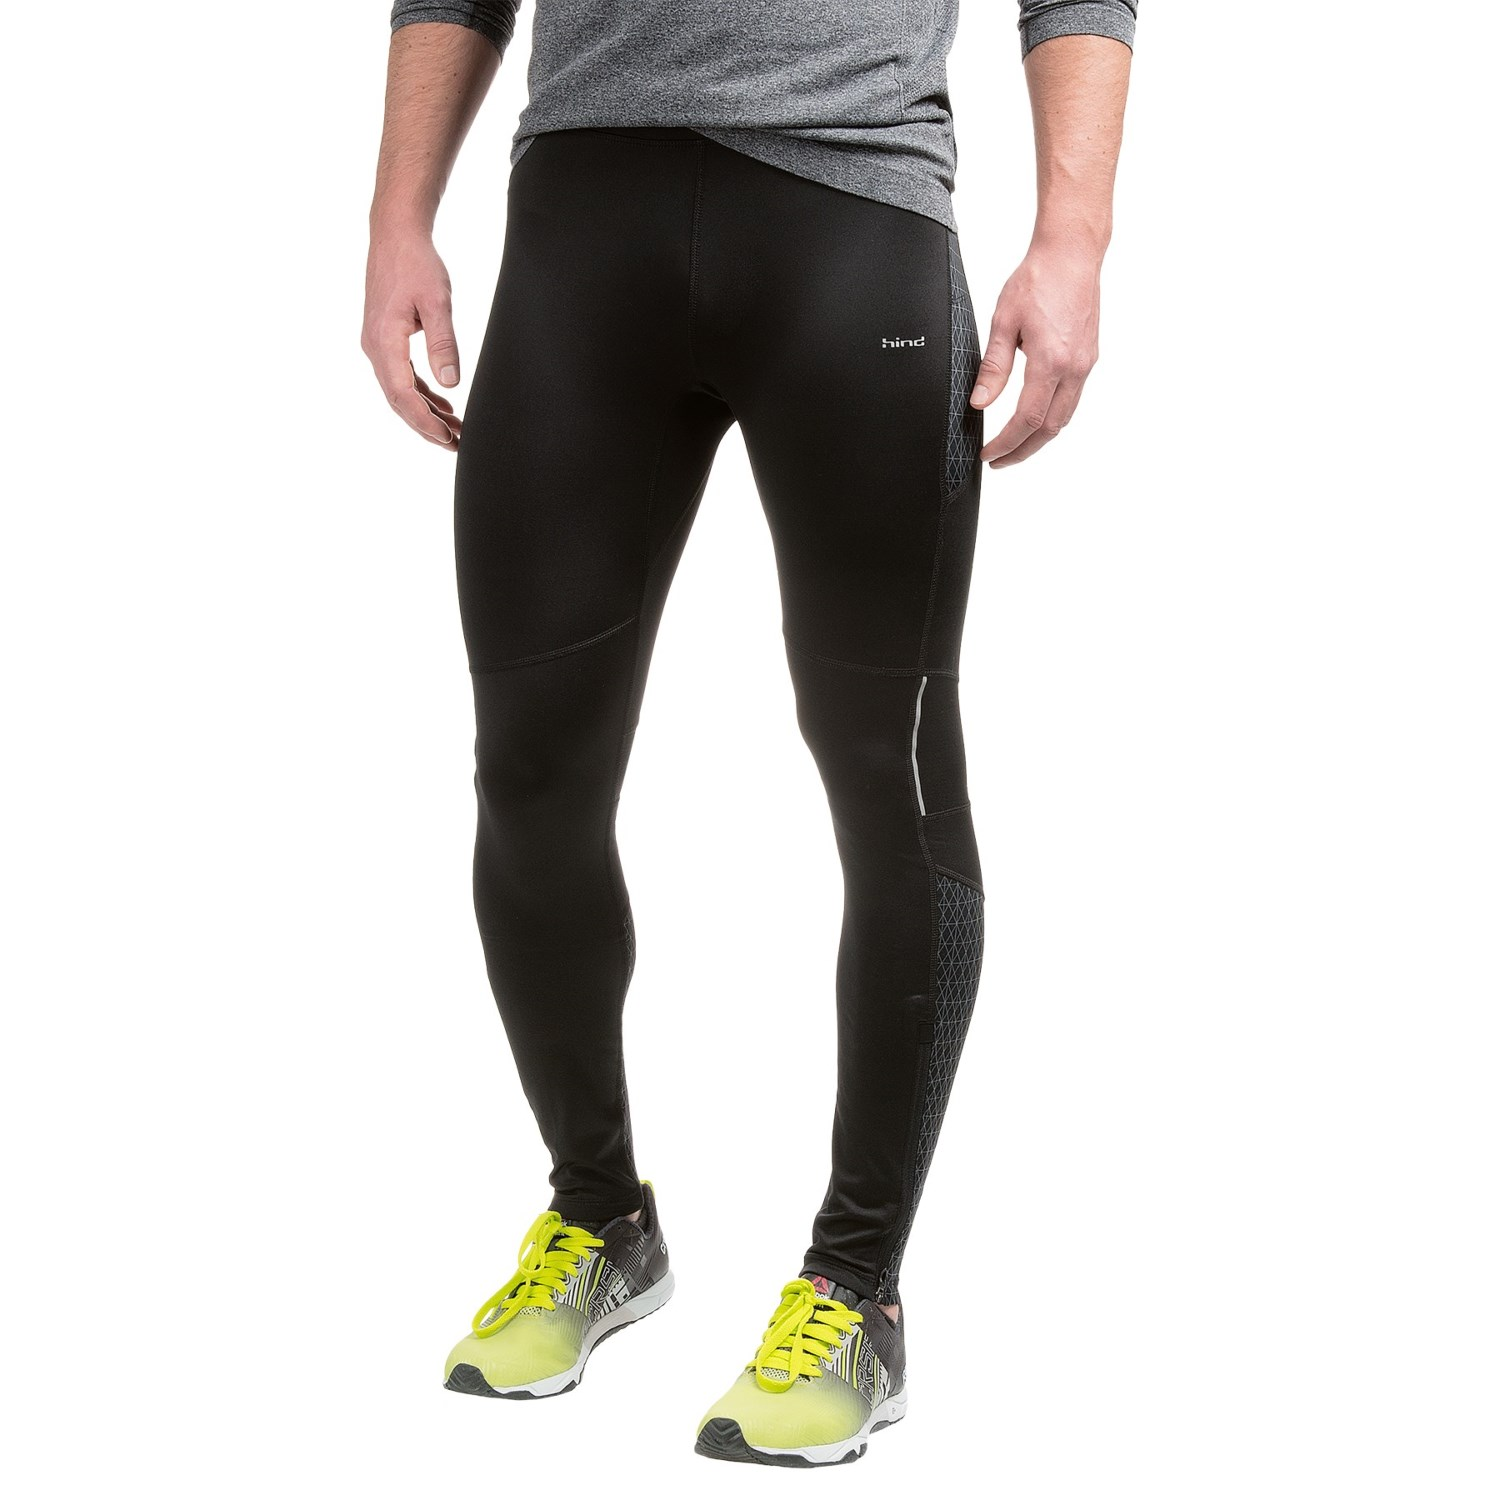 hind compression running tights for men save 50